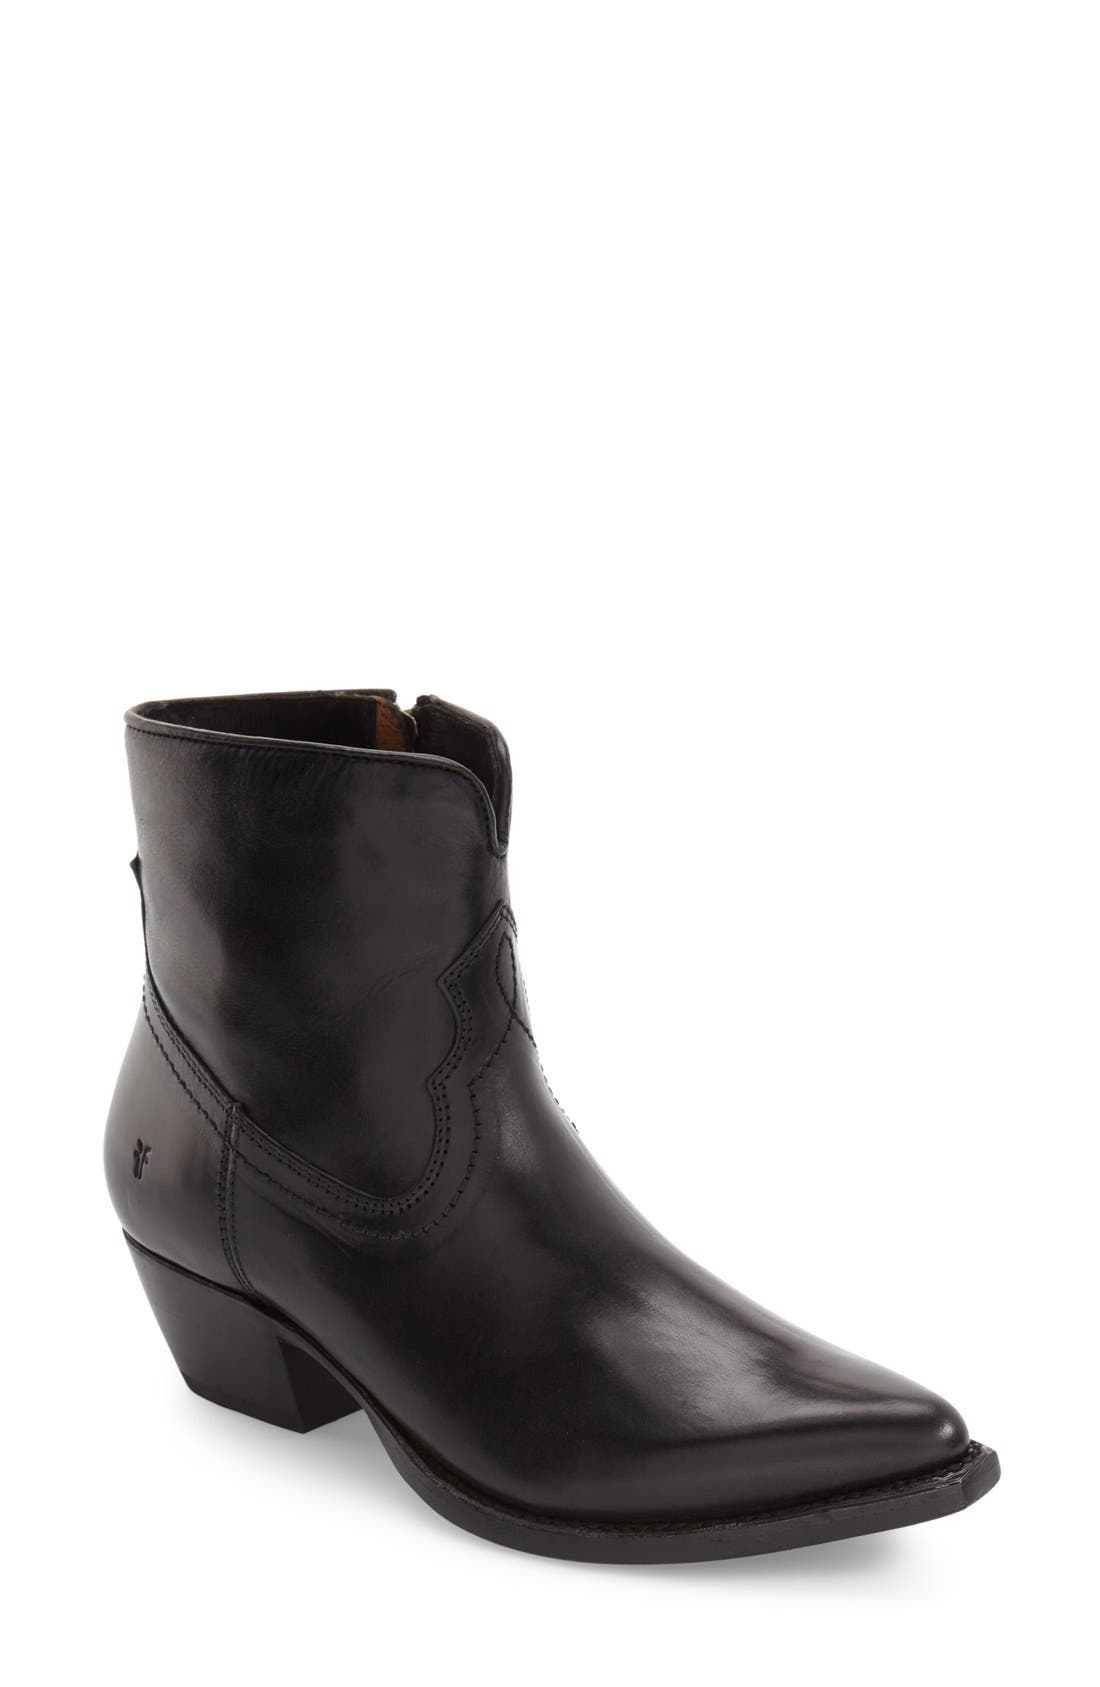 'Shane' Western Bootie,                             Main thumbnail 1, color,                             001